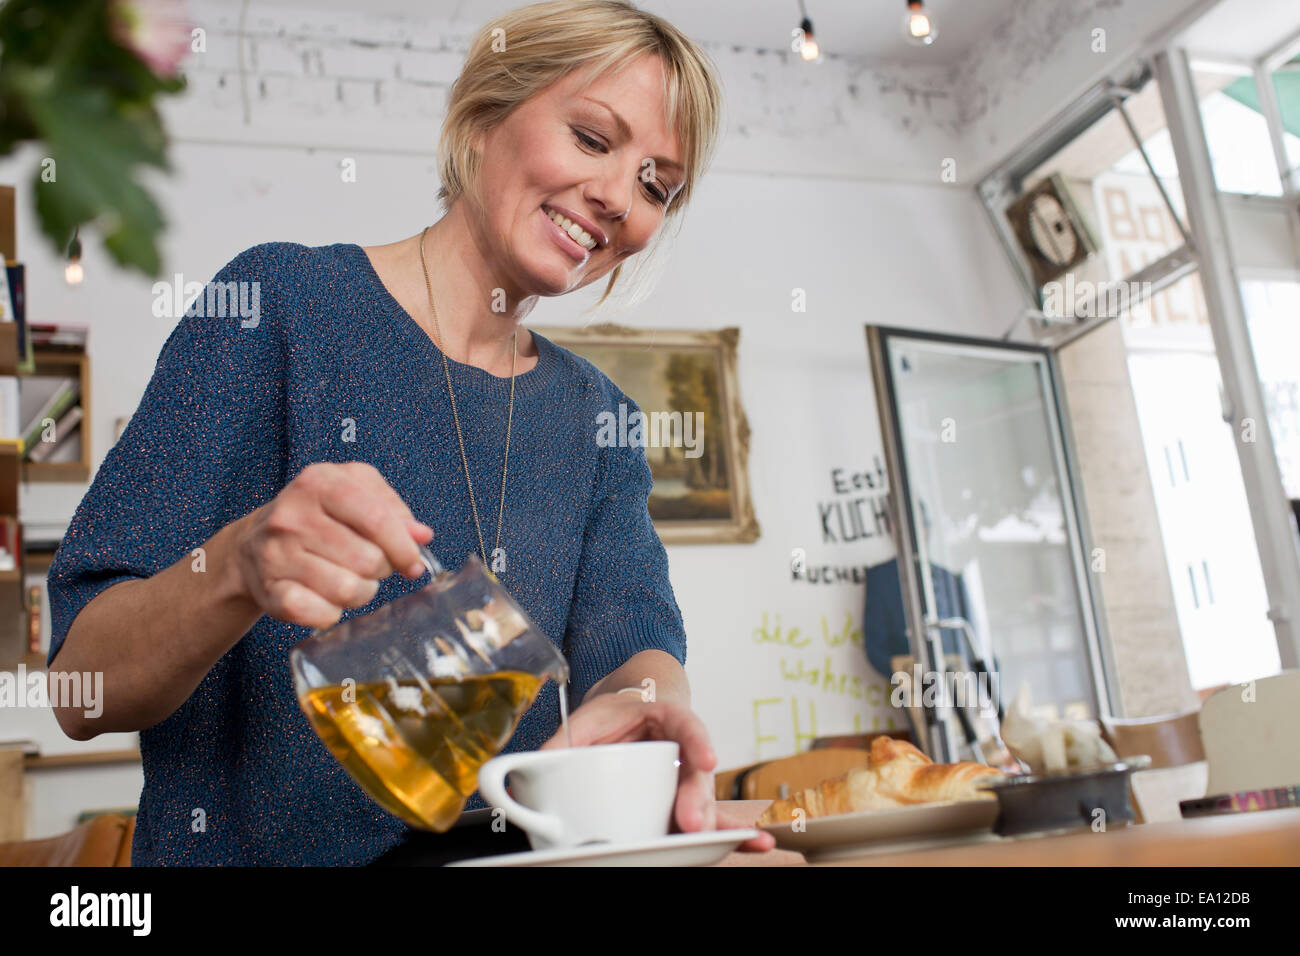 Mid adult woman pouring tea in cafe Photo Stock